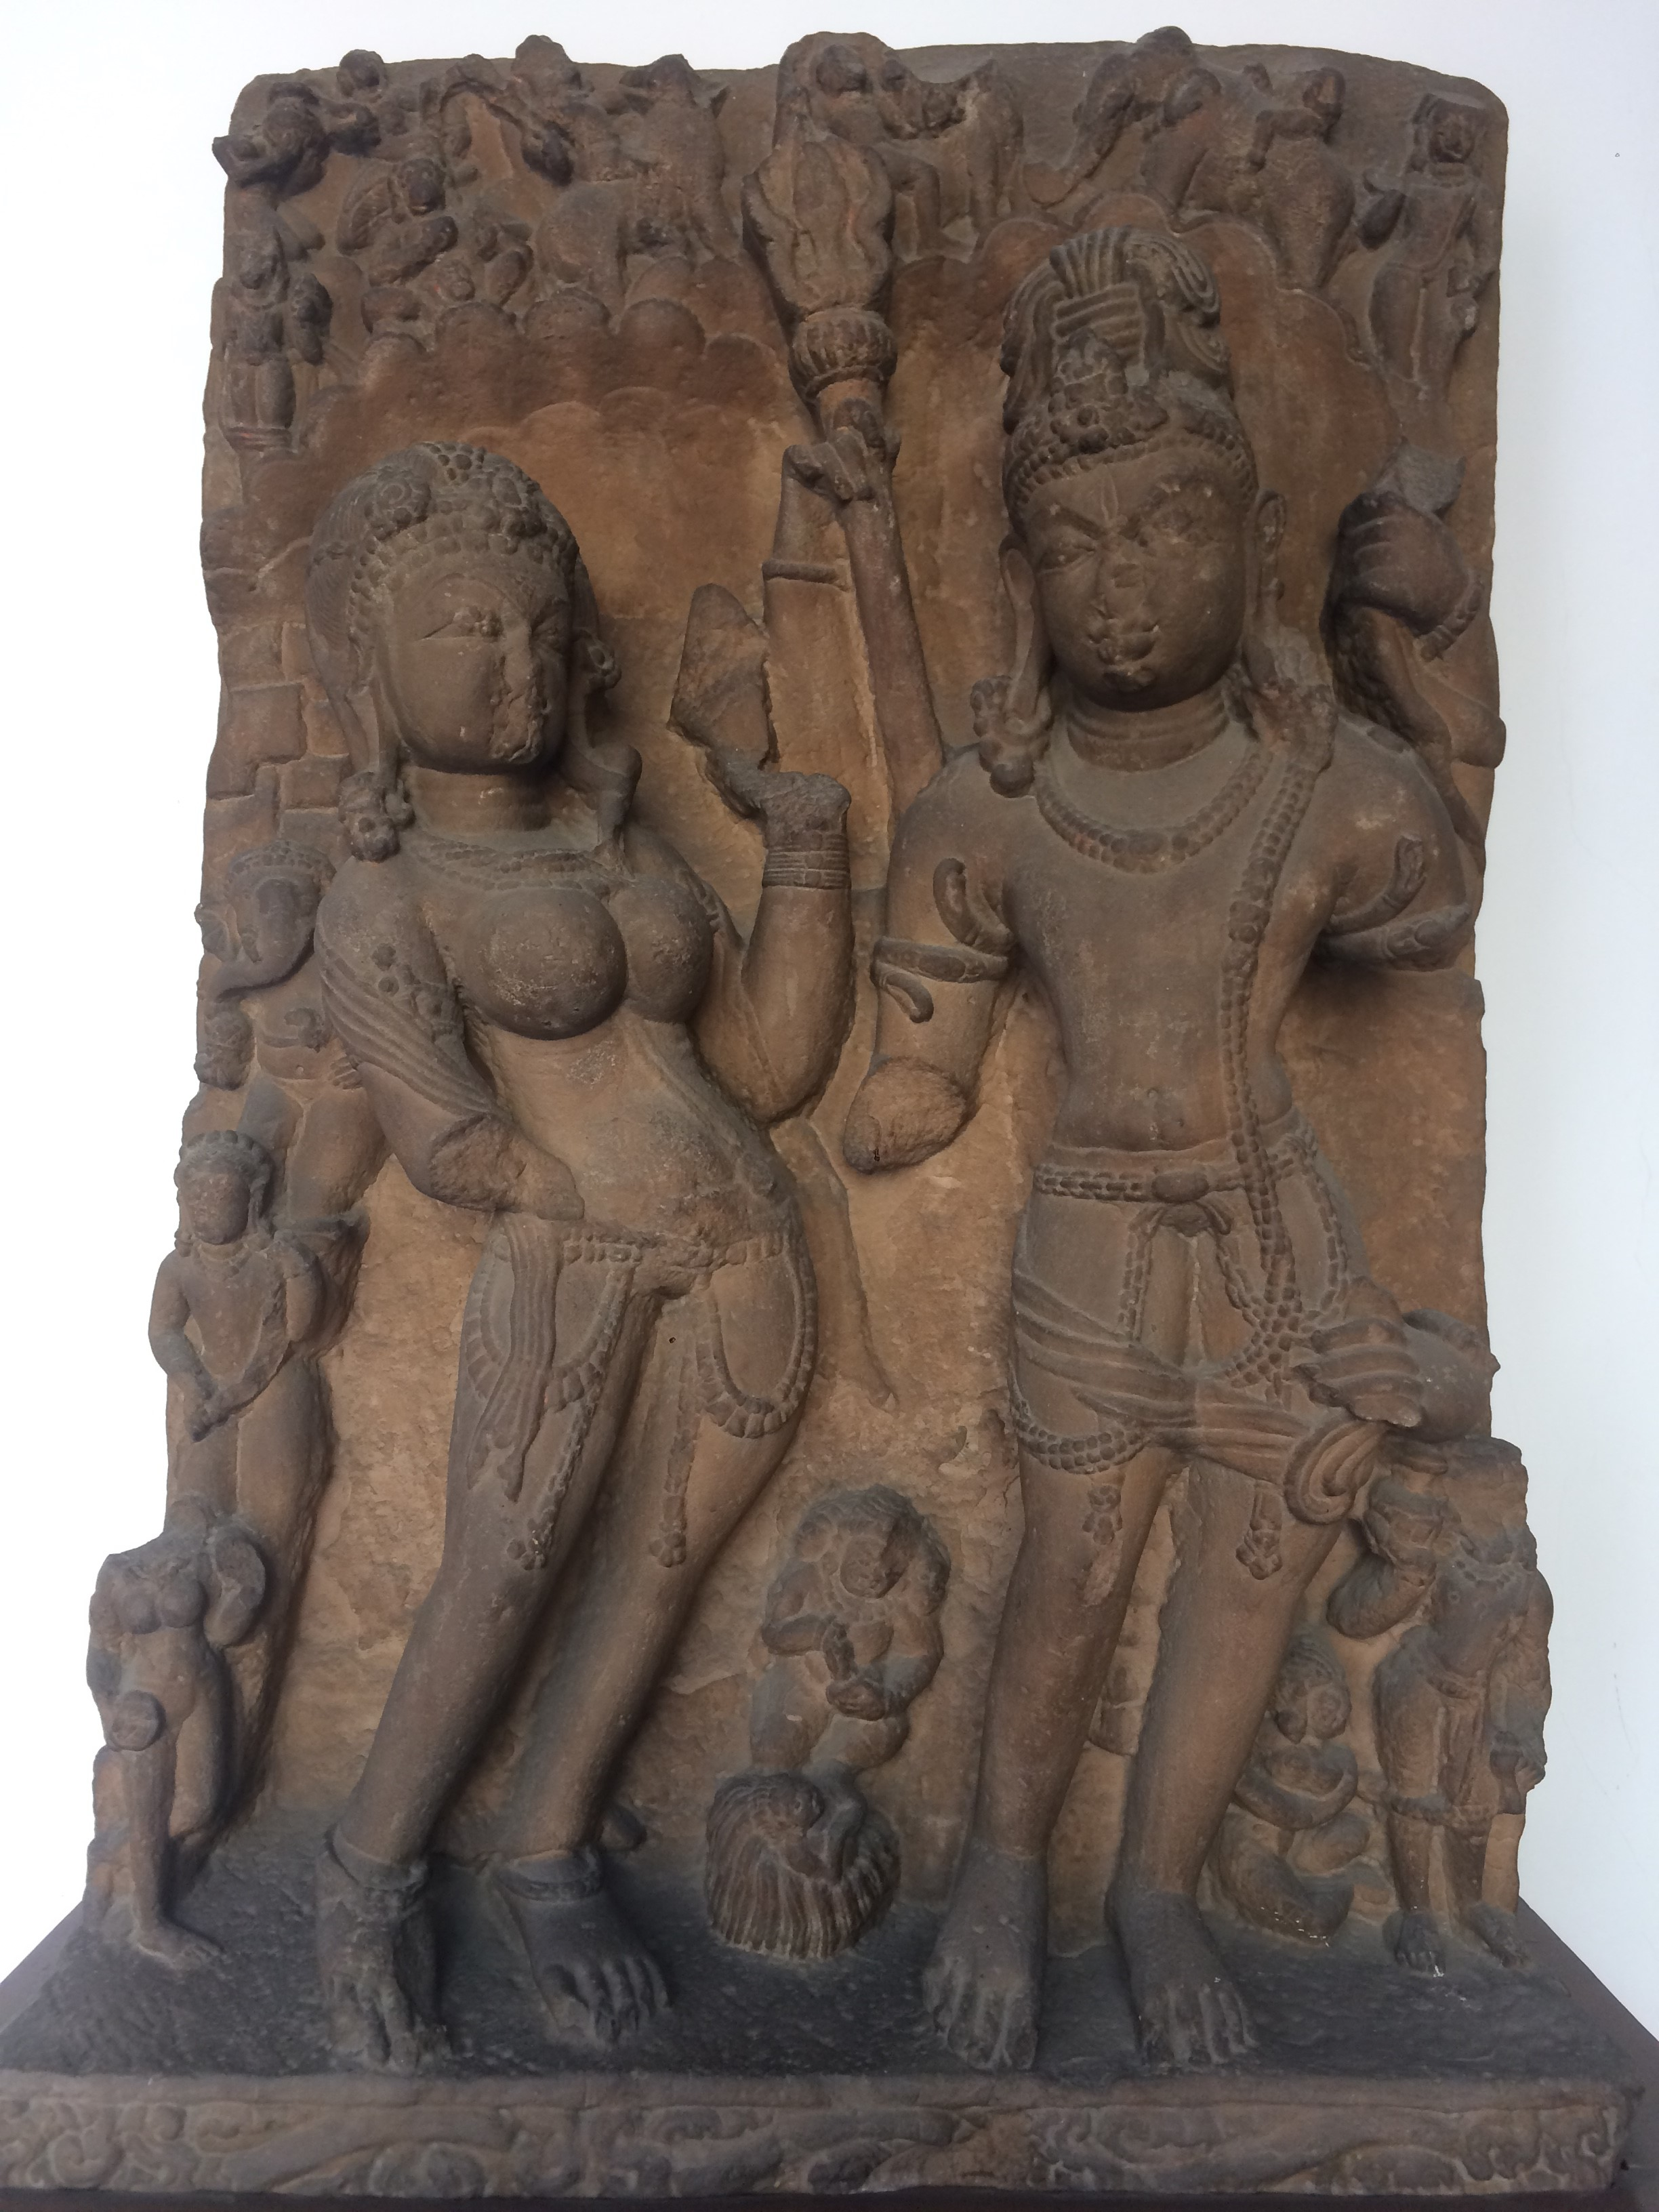 Image: Marking the moment: Kalyāṇasundaramūrti, showing the wedding of Śiva and Pārvatī © National Museum, New Delhi